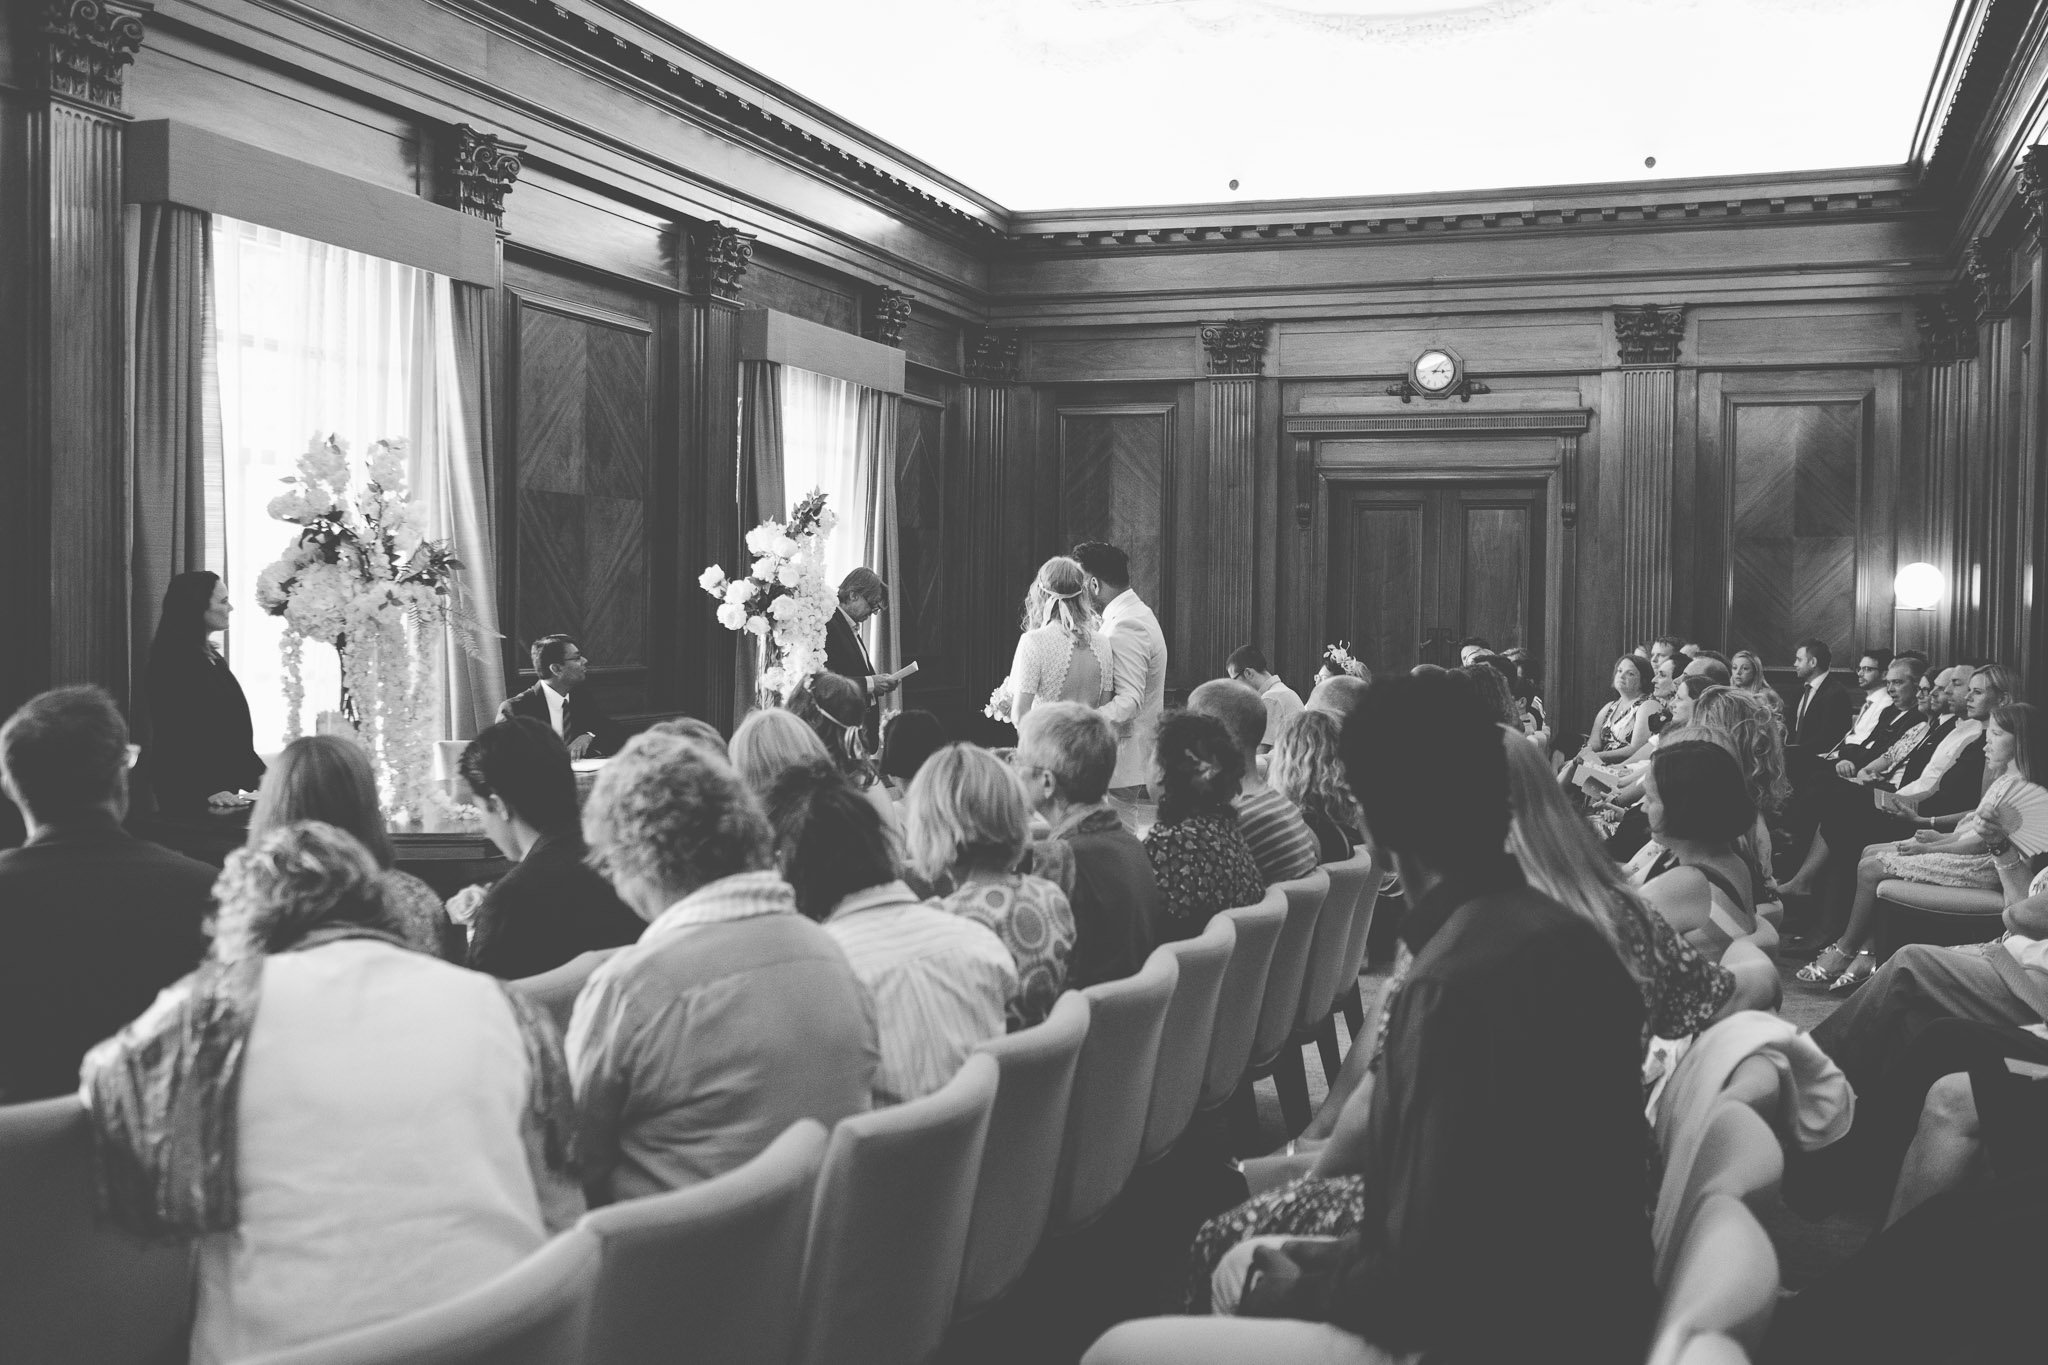 A reading by a wedding guest in the Westminster Room of the Old Marylebone Town Hall London.